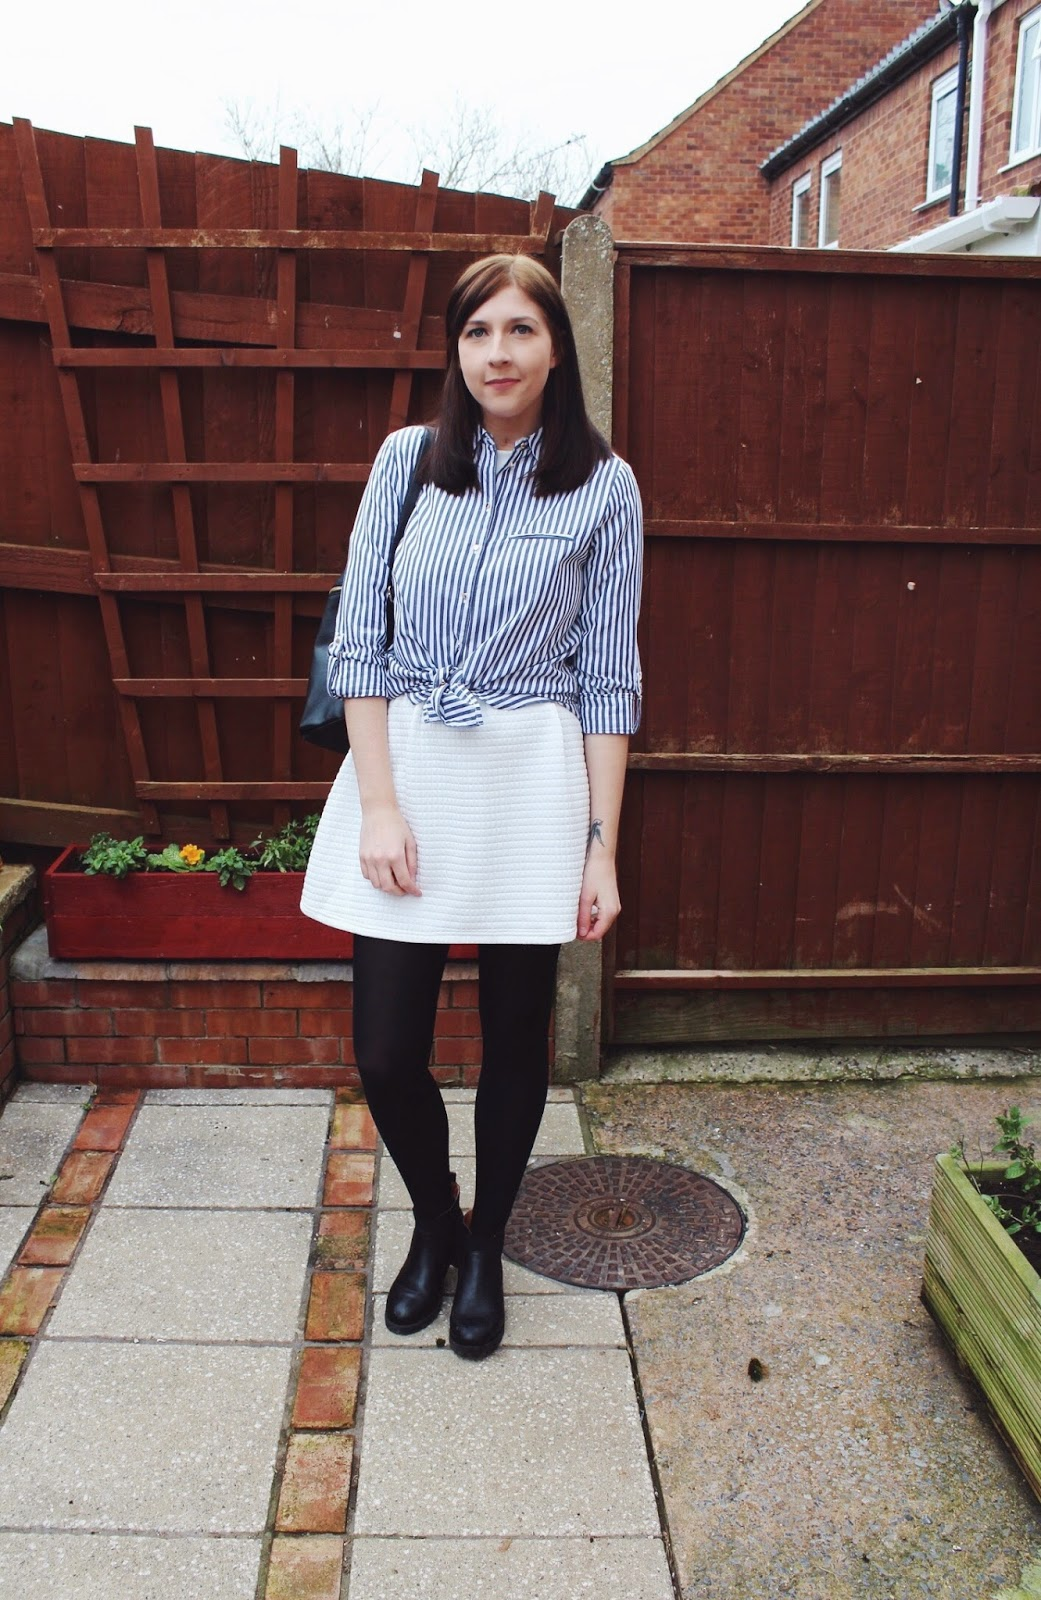 ASOS, asseenonme, fashion, fashionblogger, fashionbloggers, fblogger, fbloggers, halcyonvelvet, lookoftheday, lotd, whitedress, ootd, outfitoftheday, primark, riverisland, primark, stripedshirt, whatimwearing, wiw, rucksack